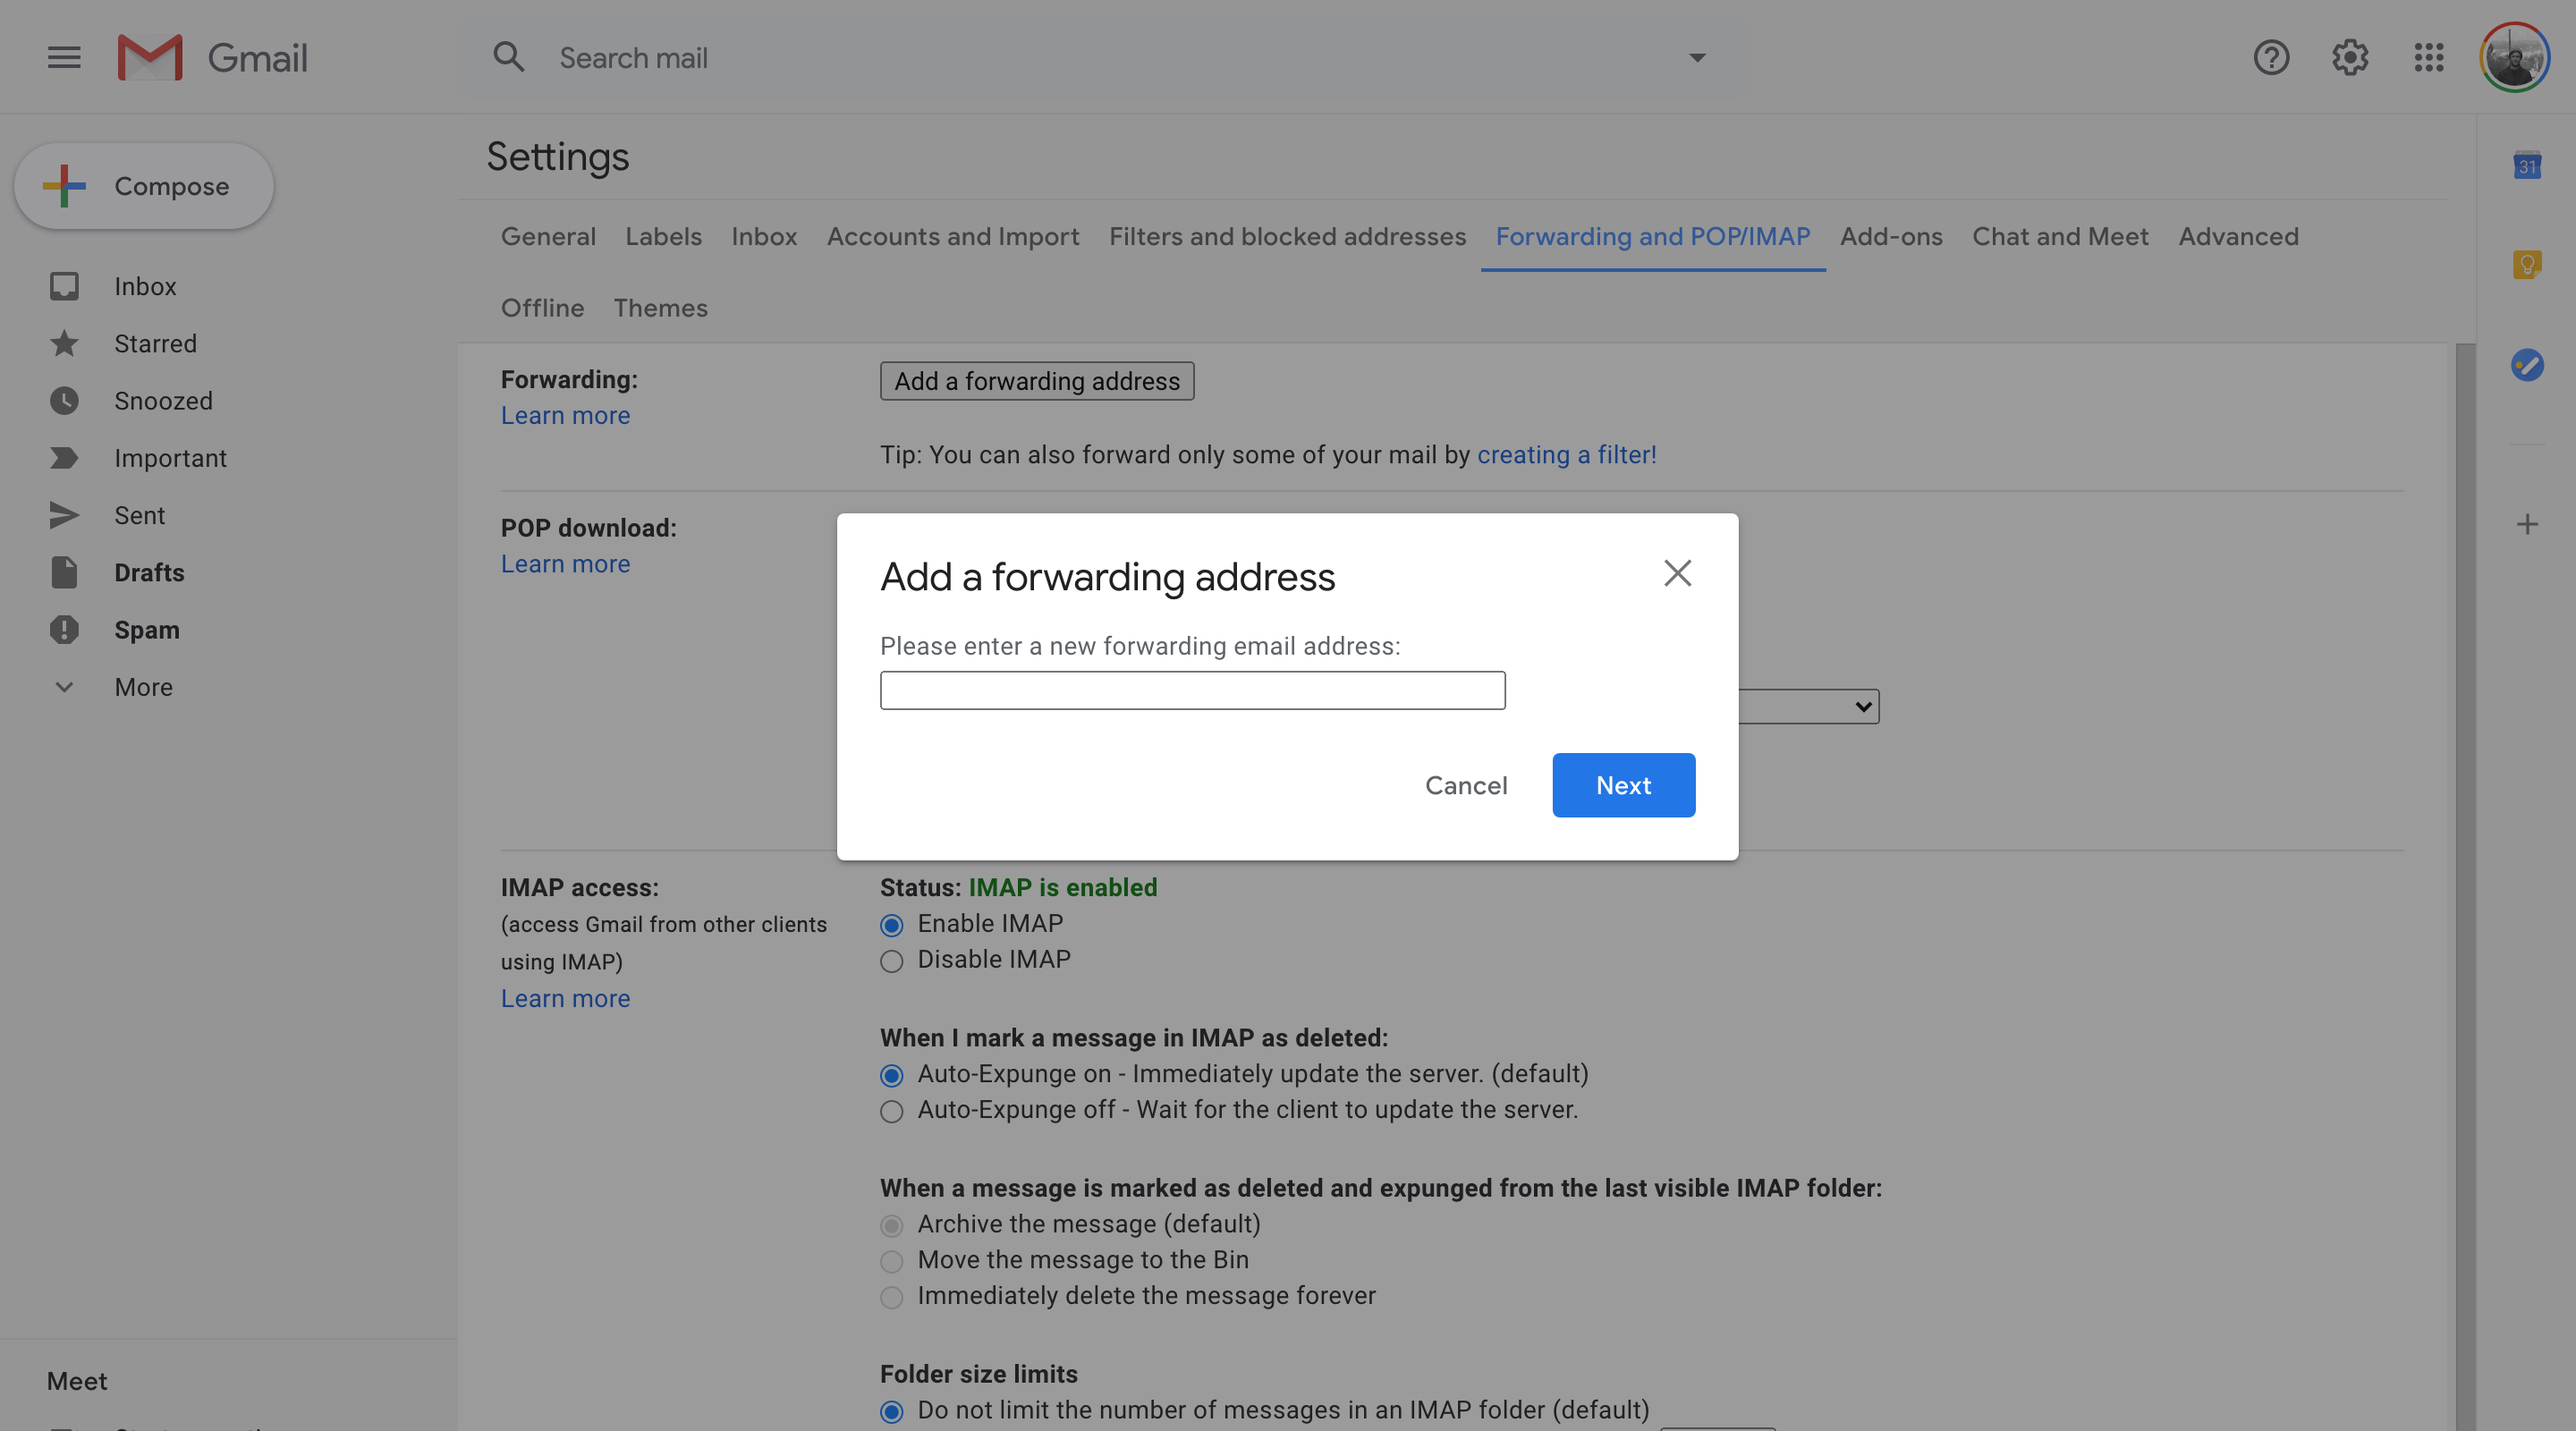 Gmail add forwarding address modal